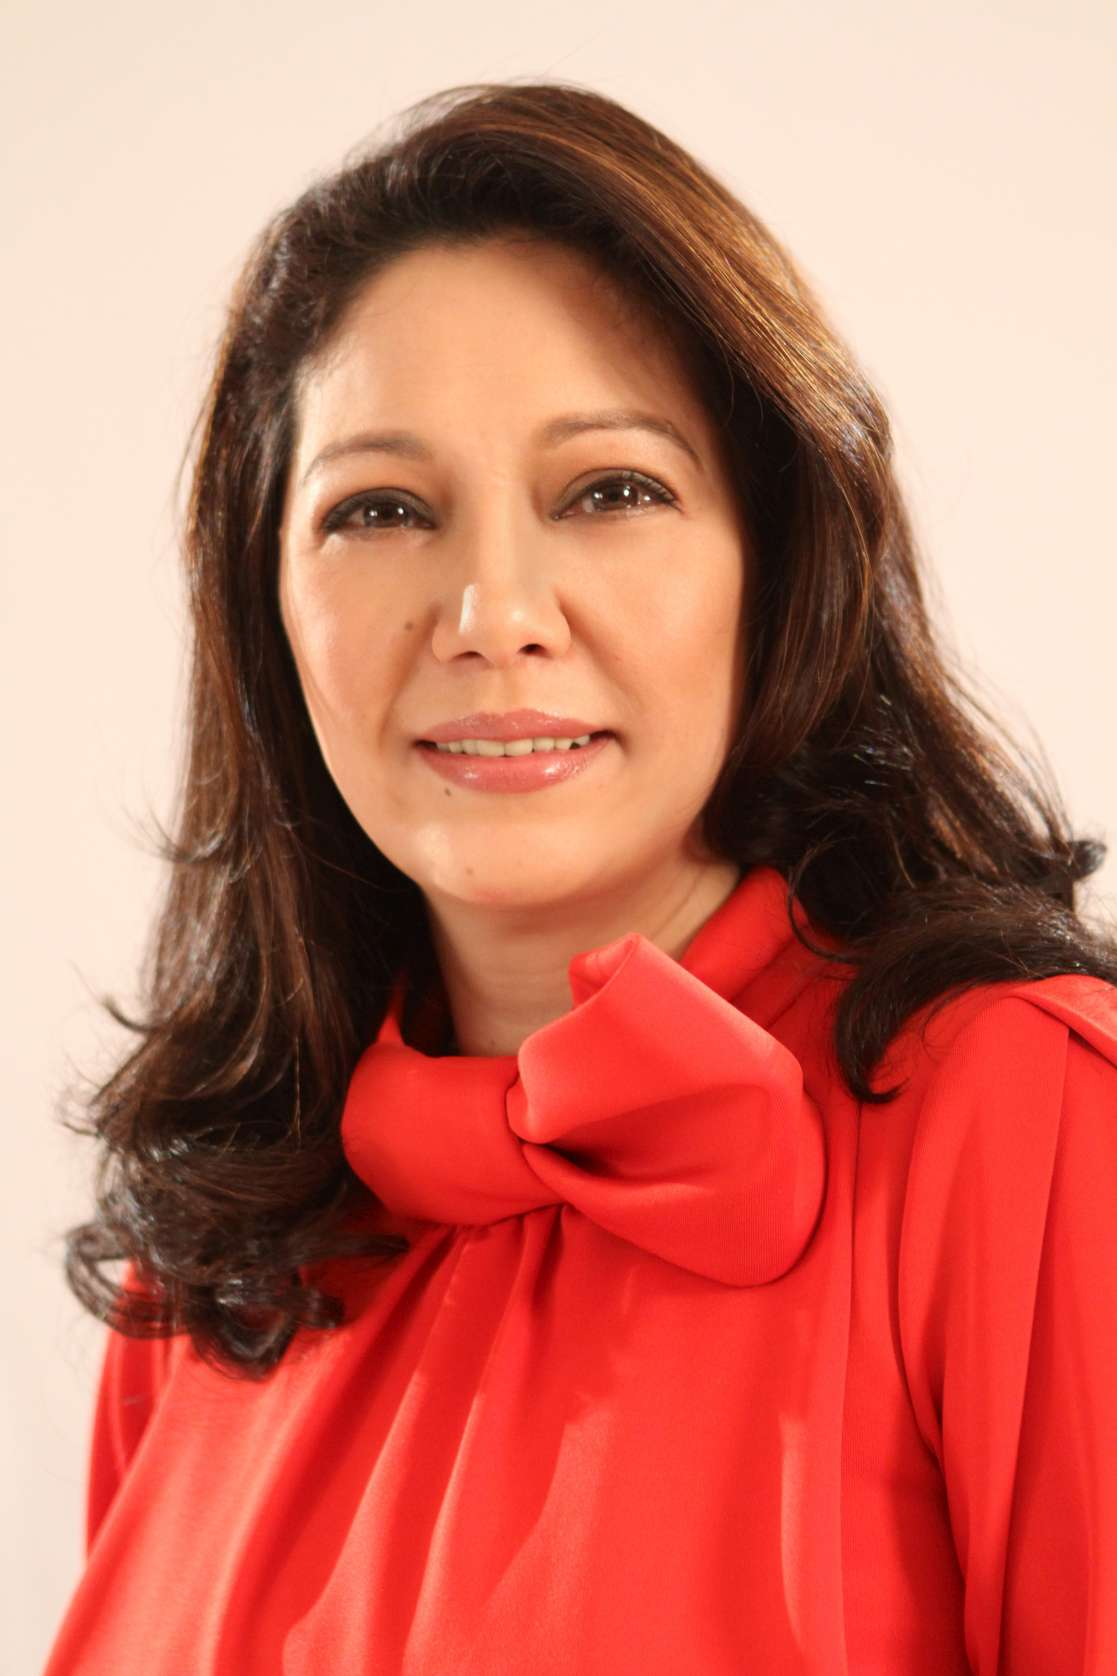 Image search: Maricel Soriano